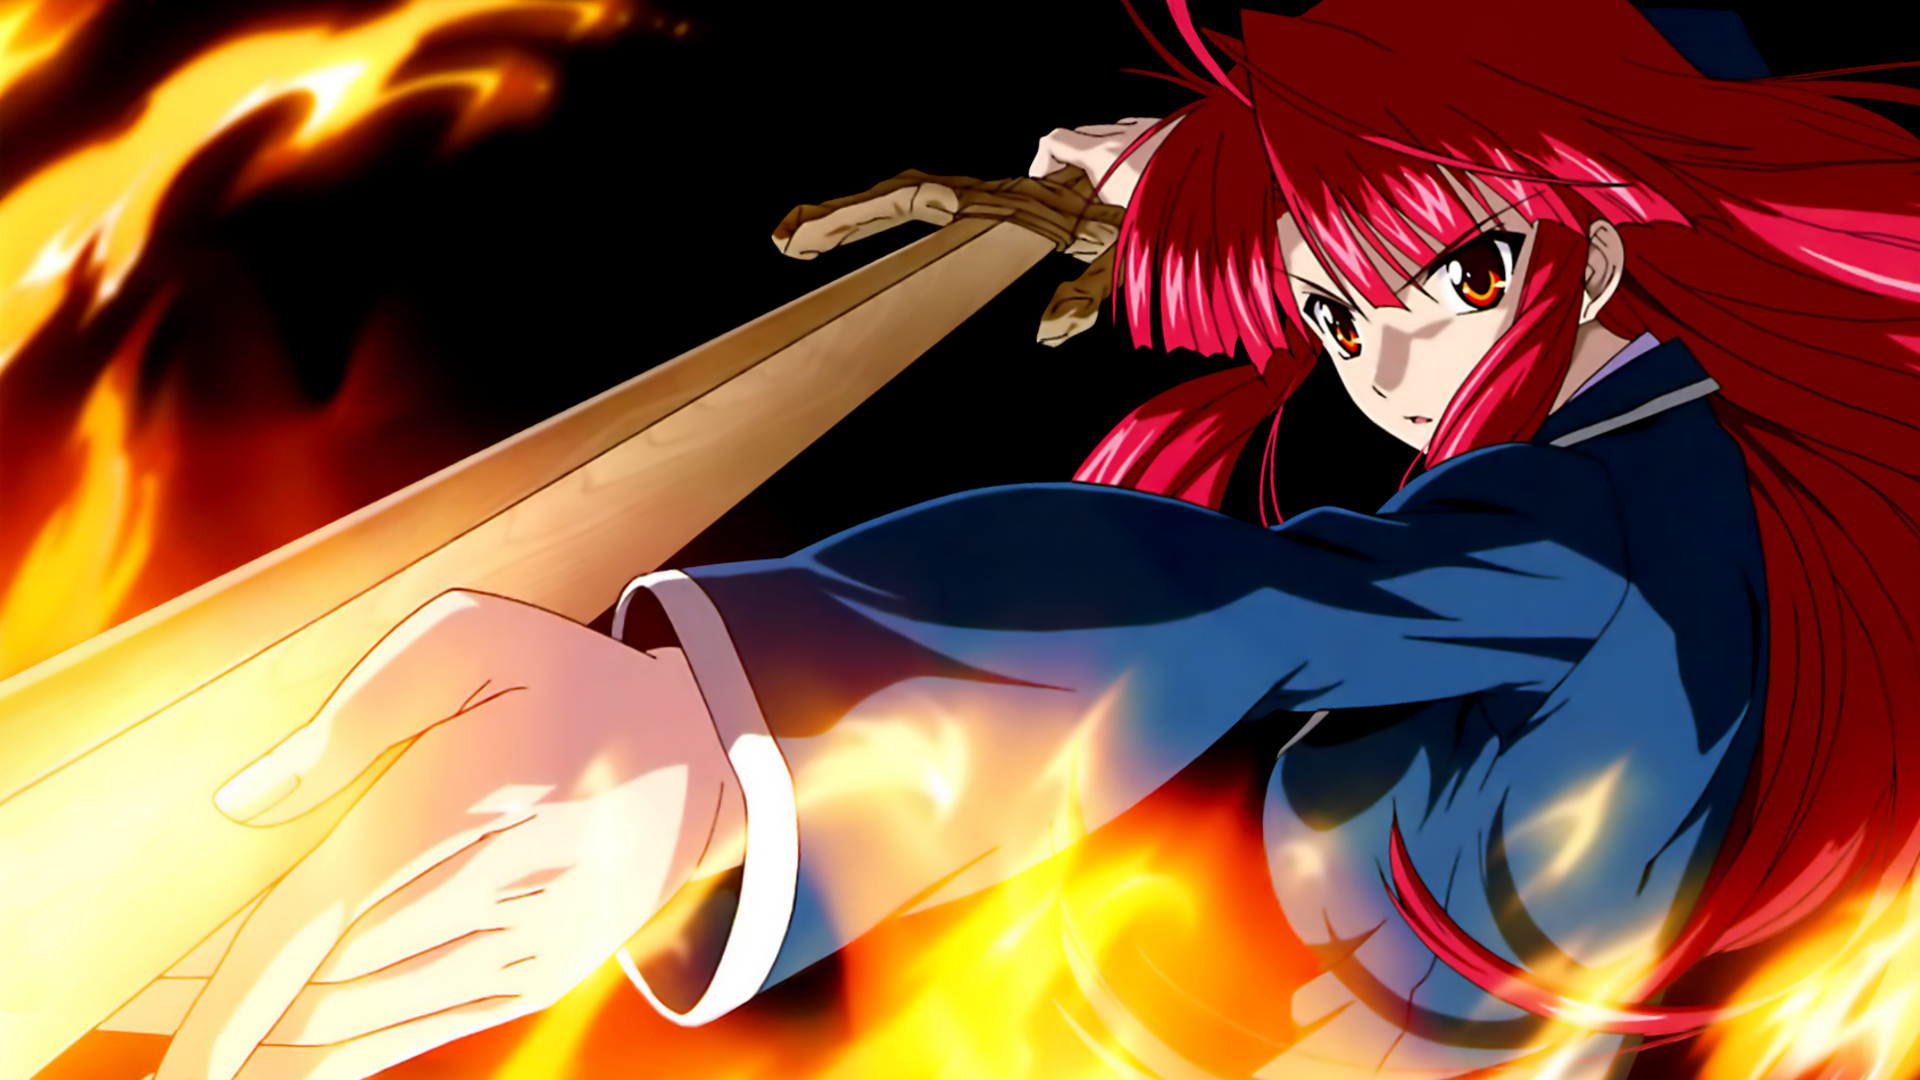 Kaze No Stigma Full HD Wallpaper And Background Image